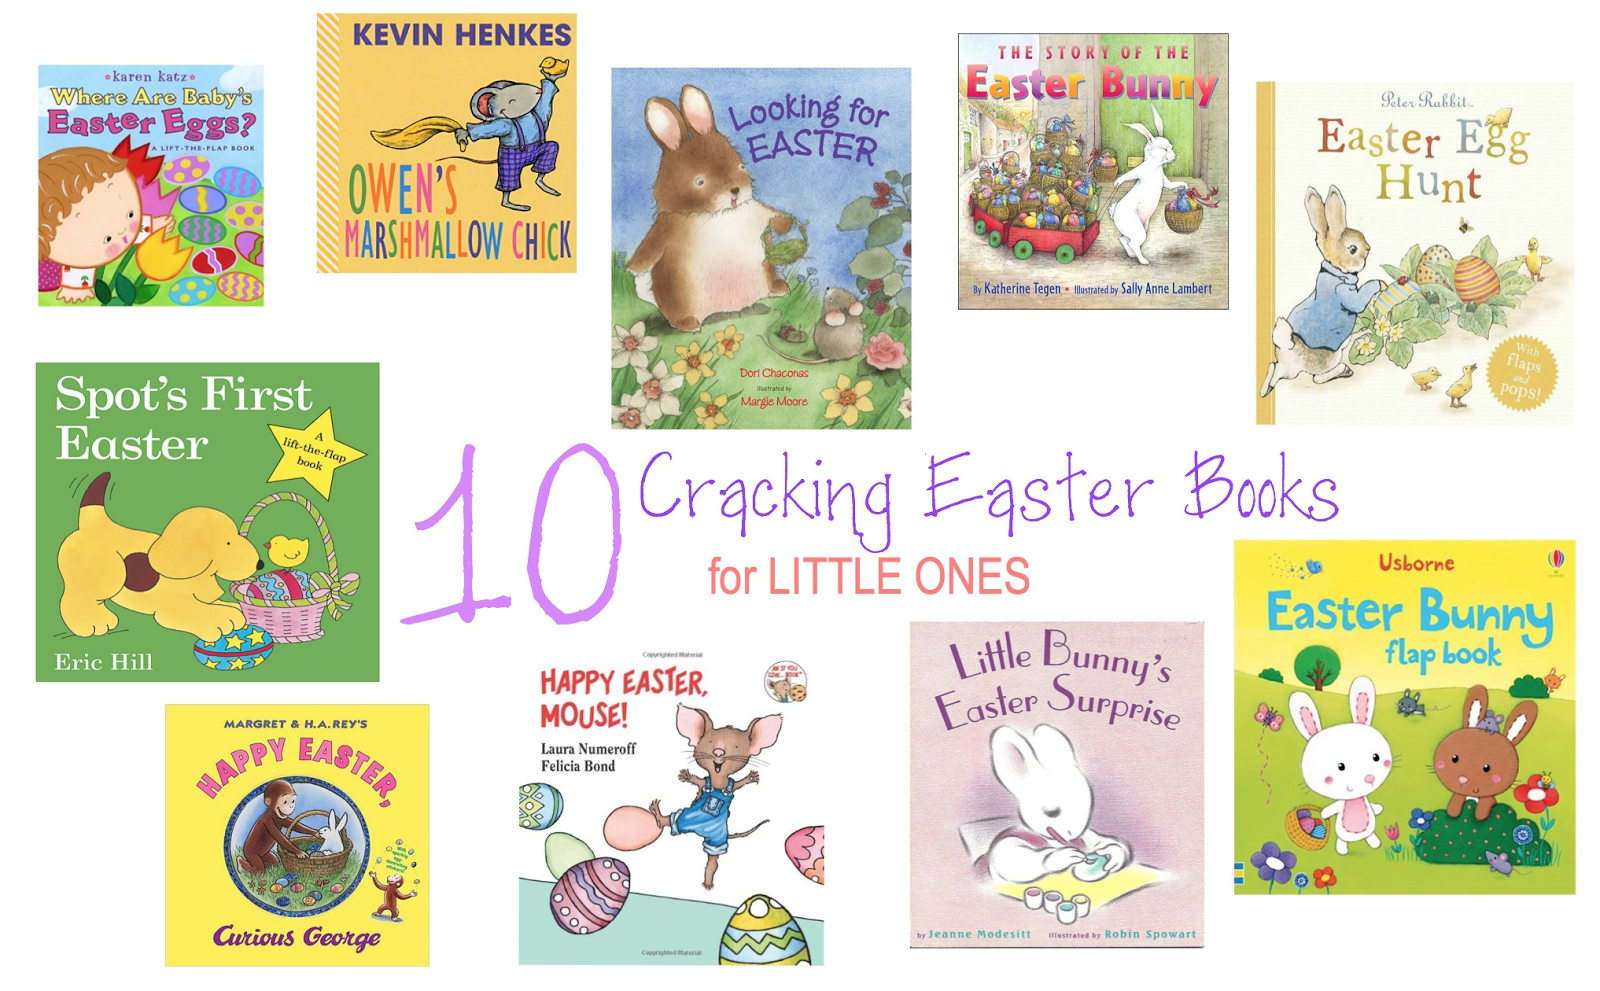 mamasVIB | V. I. BOOKCLUB: 10 Egg-cellent Easter books for little ones , 10 Egg-cellent Easter books for little ones. | easter books for kids | classic easter books | baby books | sunday night book club | classic library | books for babies | easter gift ideas | amazon | amazon.co.uk | easter ideas | baby classic library books | easter gifts | book club special | mamasVIB